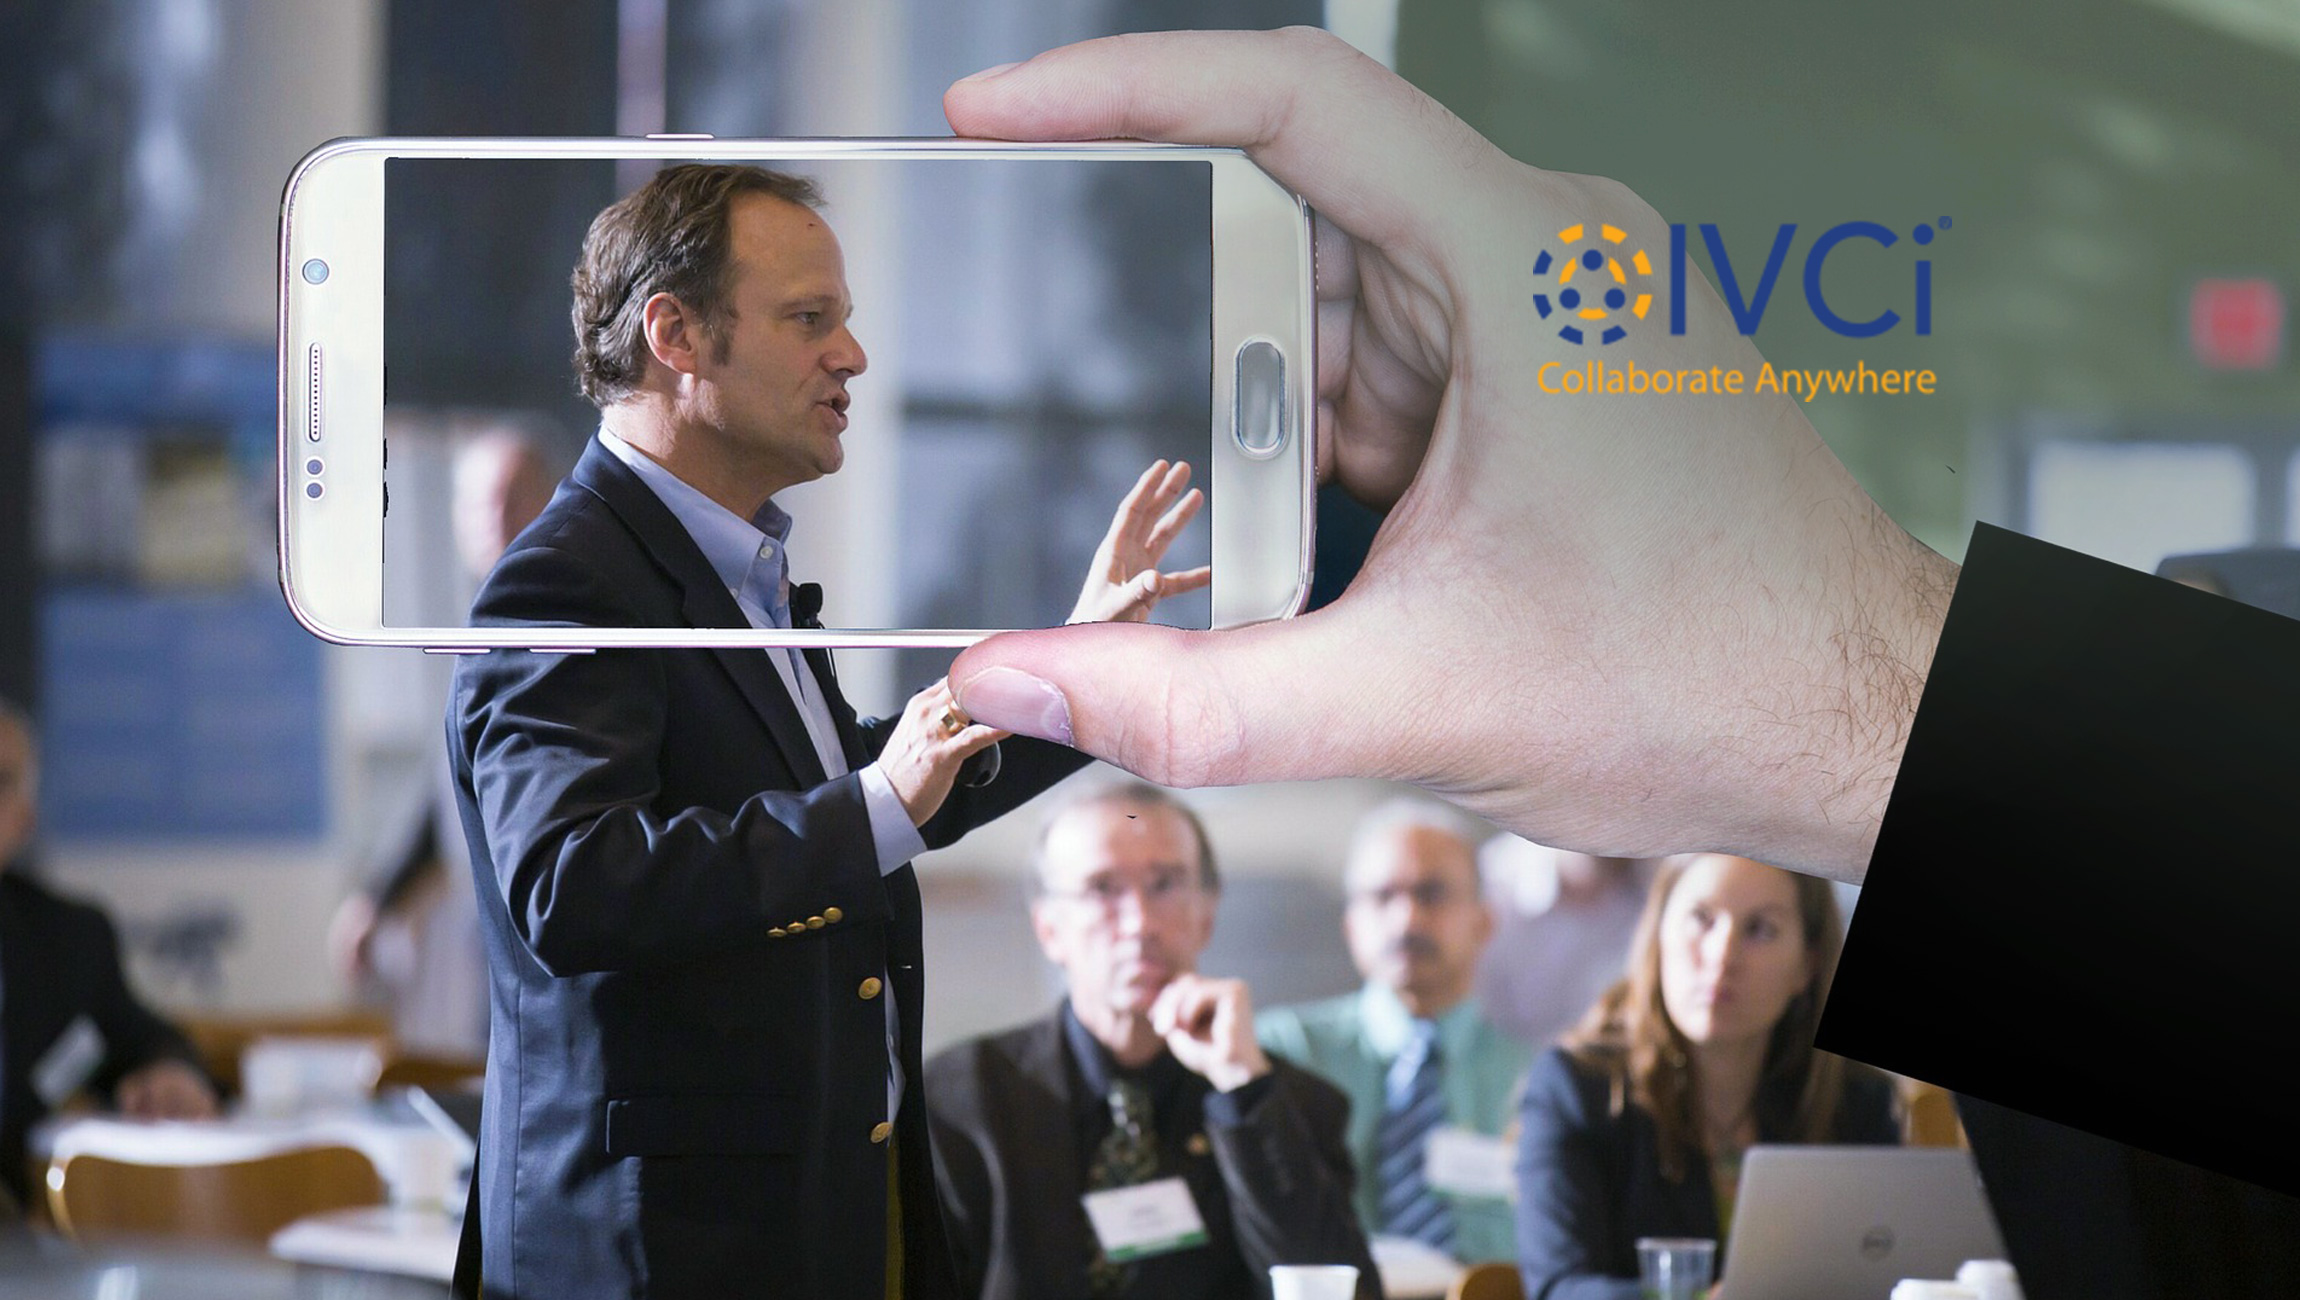 Cloud Based Video Conferencing Service, IVCi, Shares 3 Reasons Why Flexibility in Conference Room Setups Is Crucial